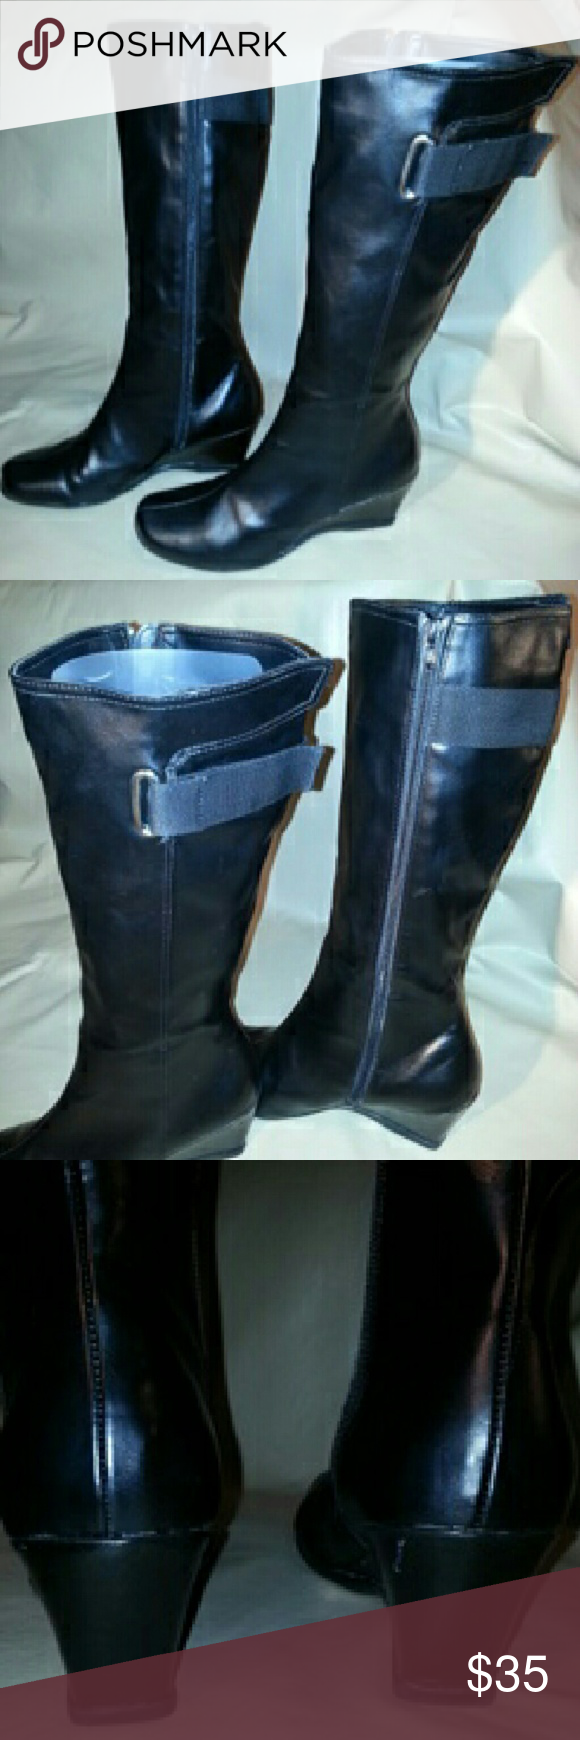 """Kenneth Cole boots Kenneth Cole - Reaction black boots, nearly new condition, 2 3/4"""" wedge heel,  15"""" shaft height, shaft opening 15"""", shaft does not expand. Size 11. Kenneth Cole Reaction Shoes Winter & Rain Boots"""